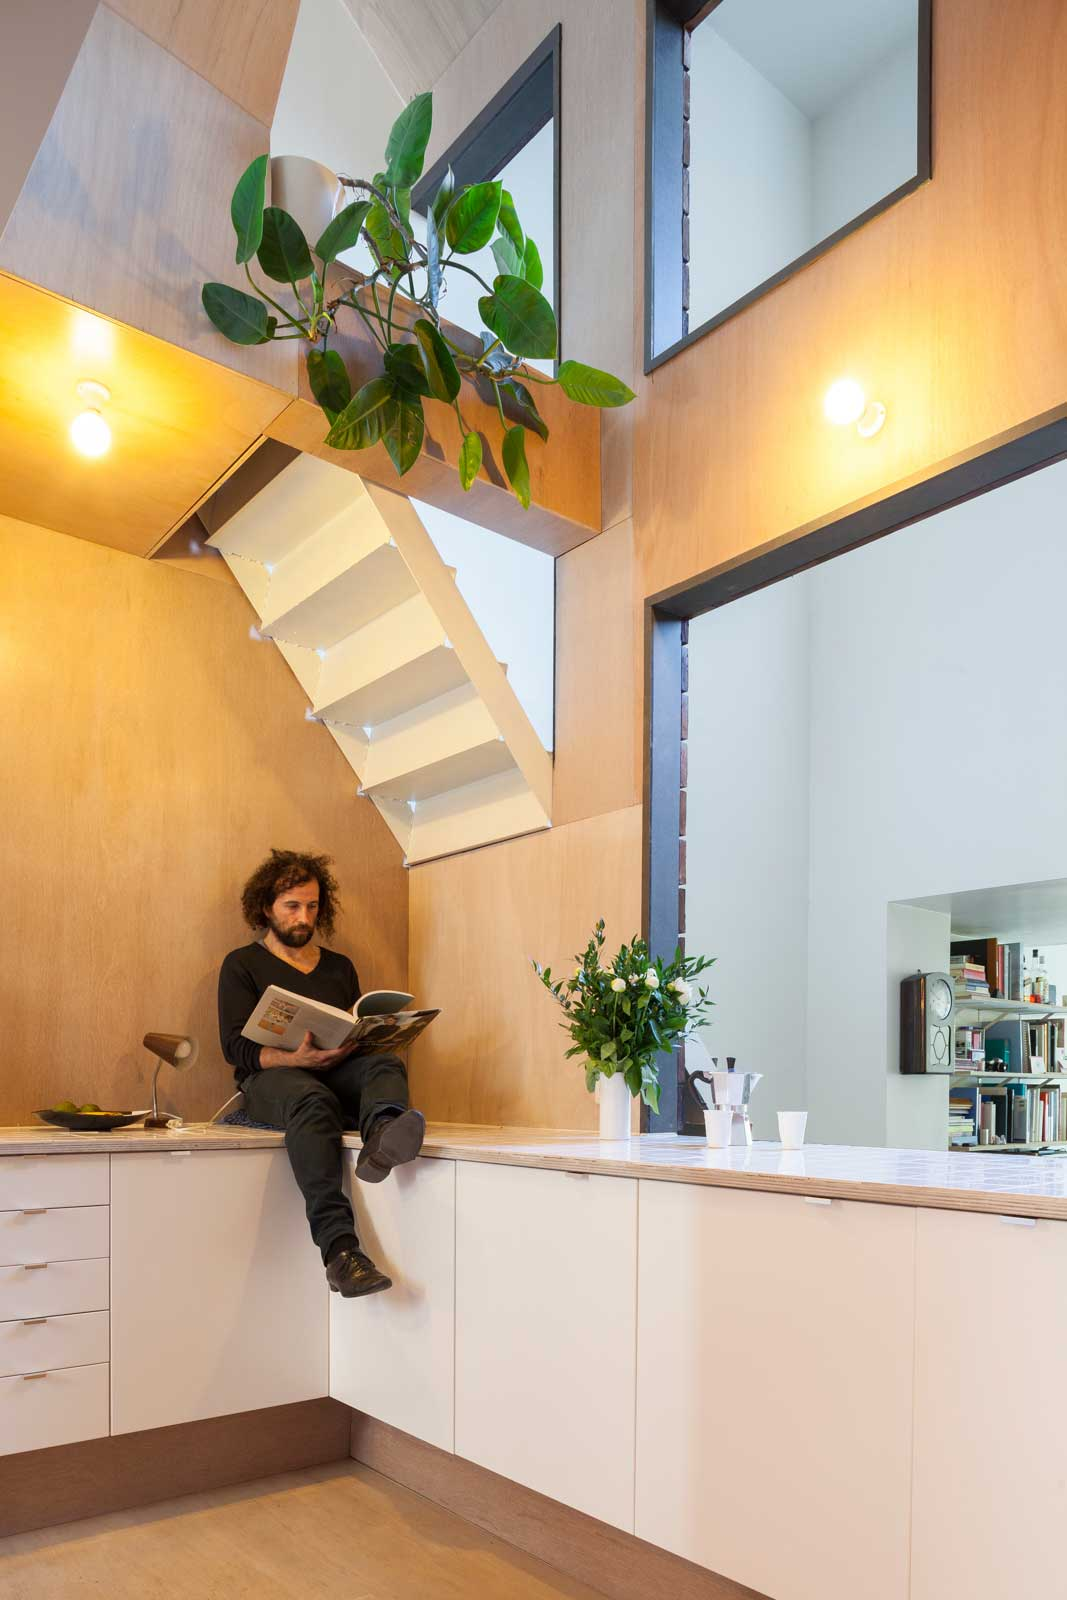 Tijl and Indra in Ghent, Belgium by Atelier Vens Vanbelle | Yellowtrace